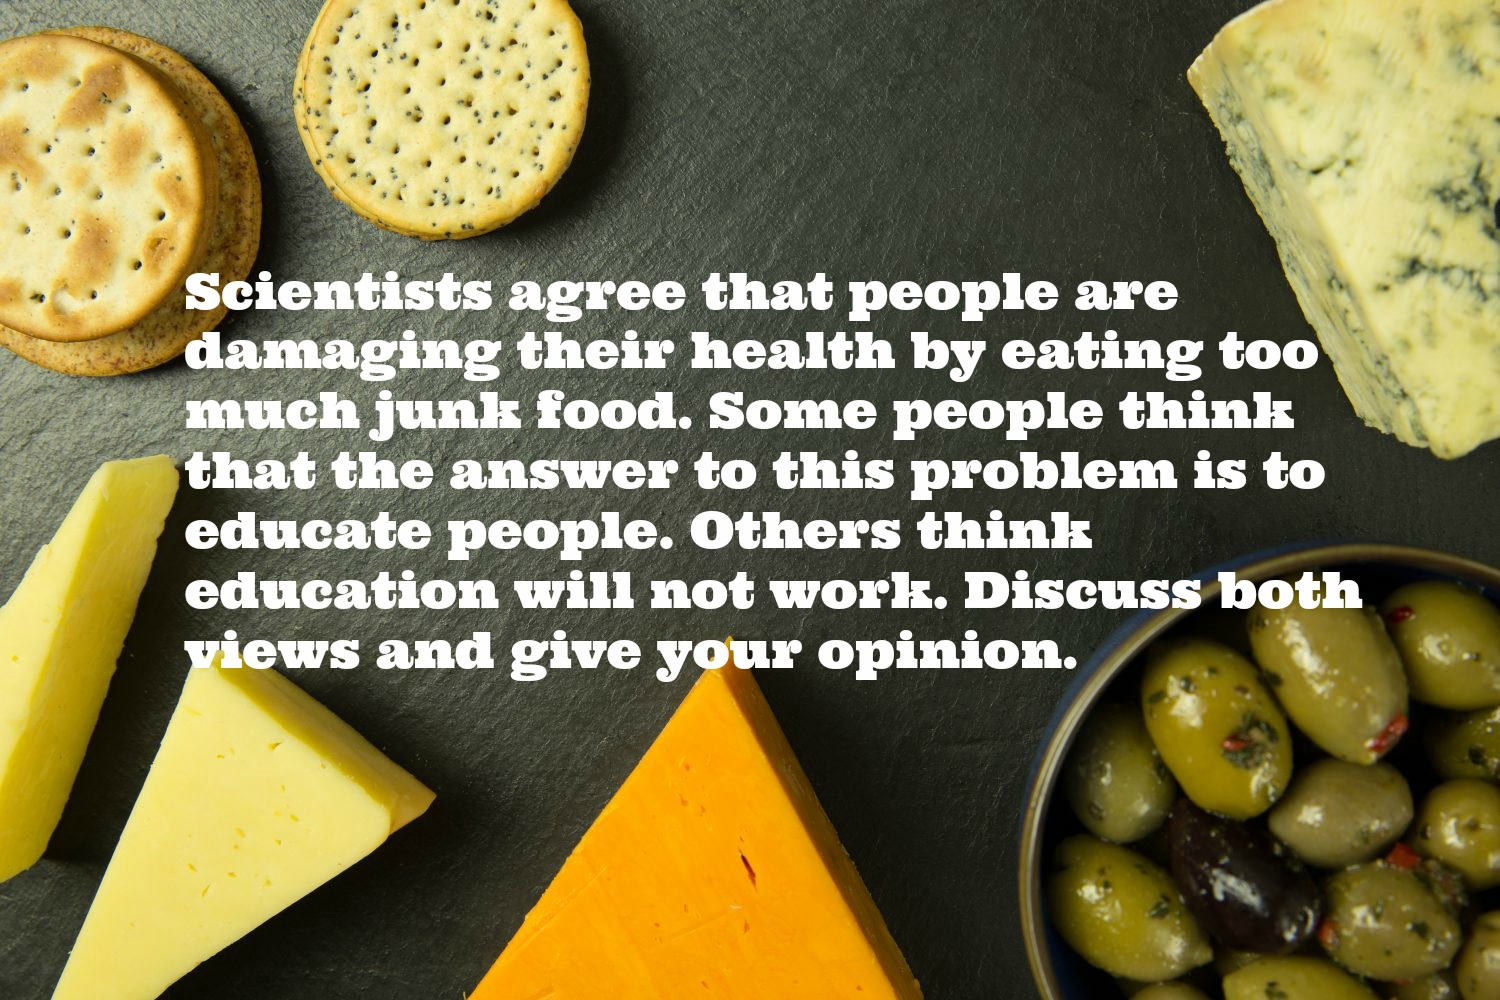 task ielts discursive essay educating people about the danger scientists agree that people are damaging their health by eating too much junk food some people think that the answer to this problem is to educate people